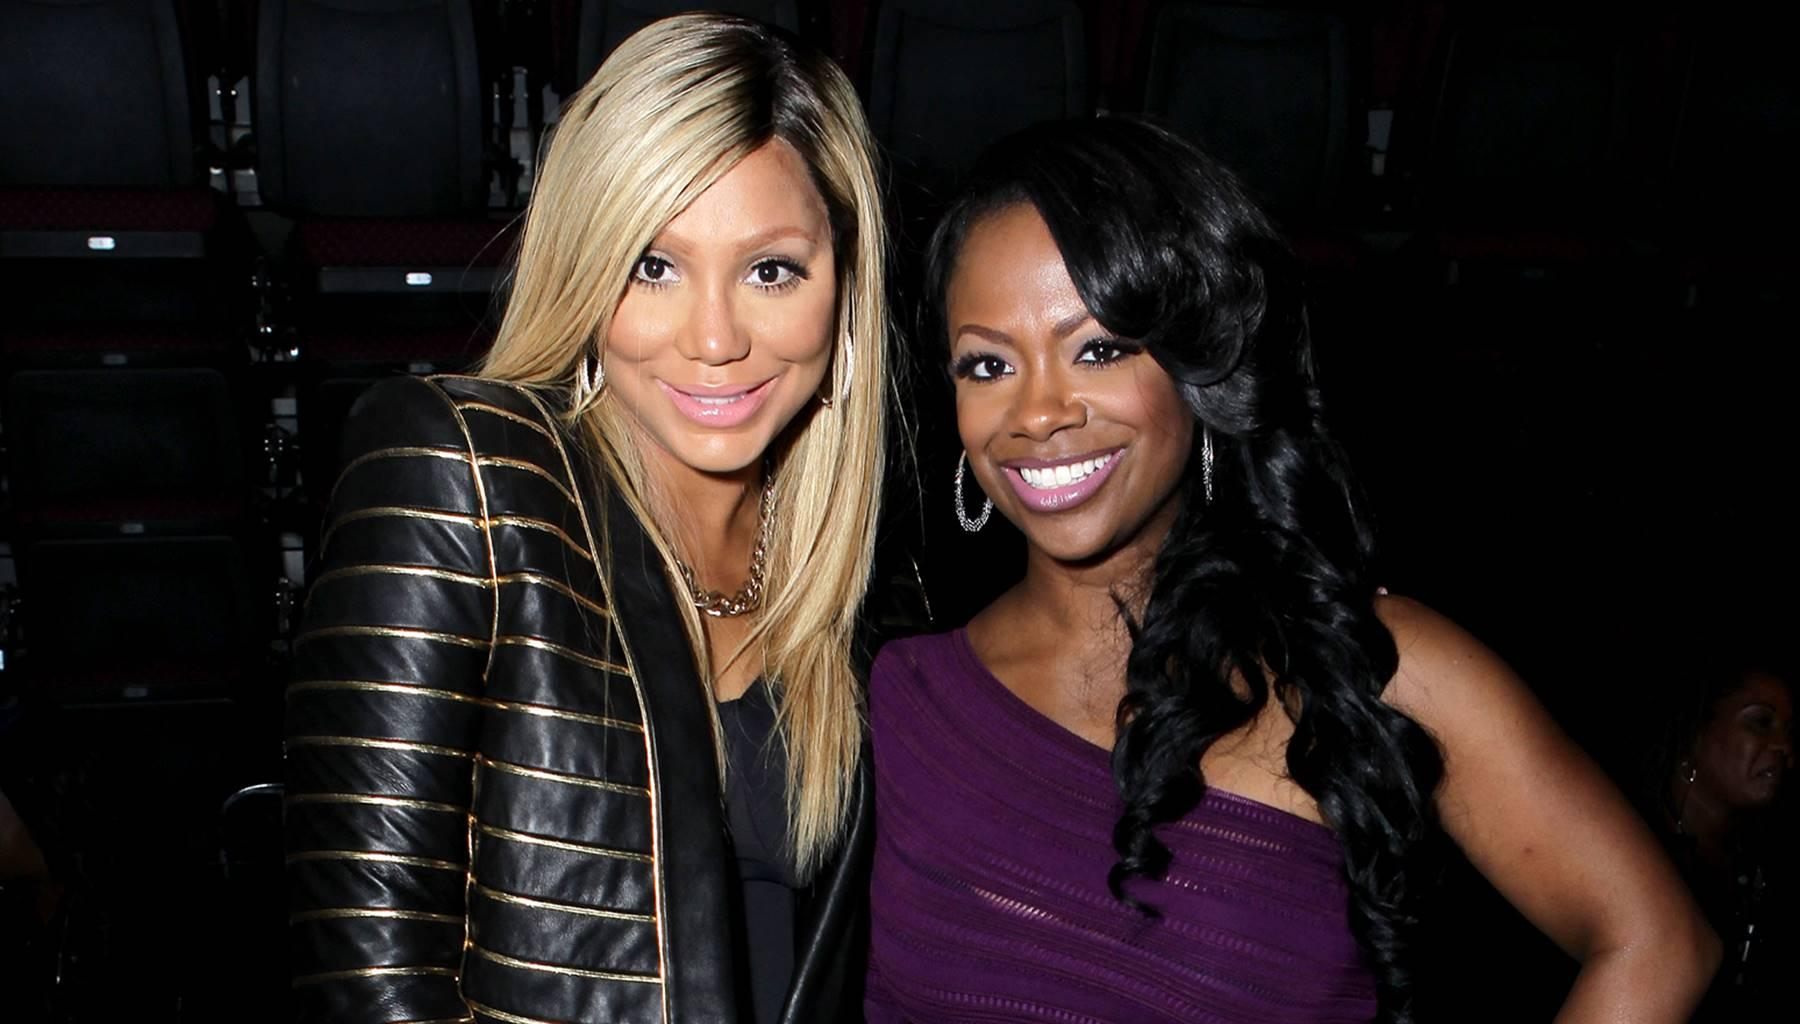 Tamar Braxton Shades Monica Brown On 'Celebrity Big Brother' While Discussing Her Relationship With Kandi Burruss In Icy Video